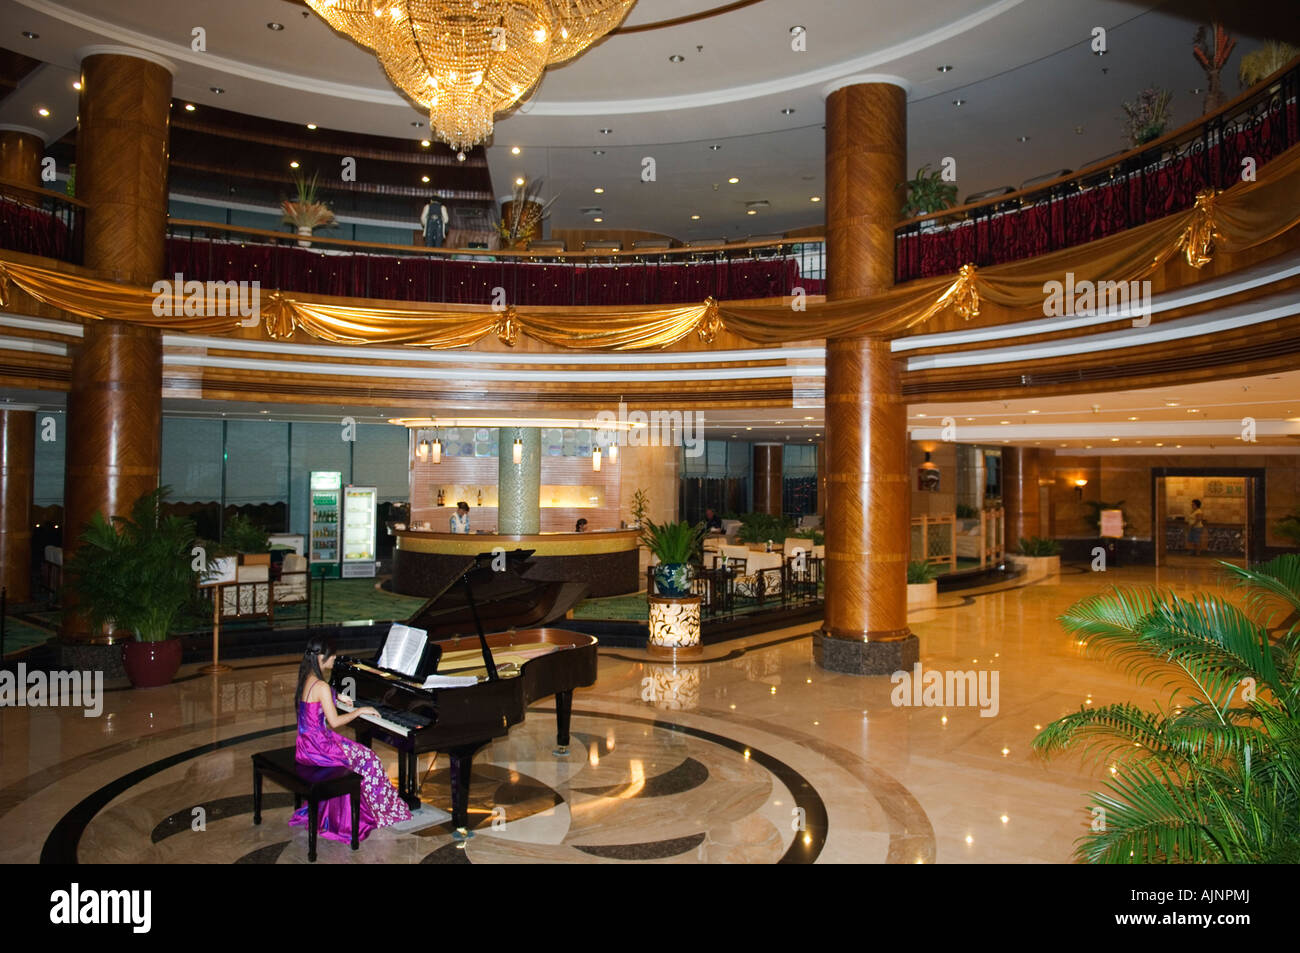 Pianist in lobby of pearl river garden hotel sanya city hainan province china asia